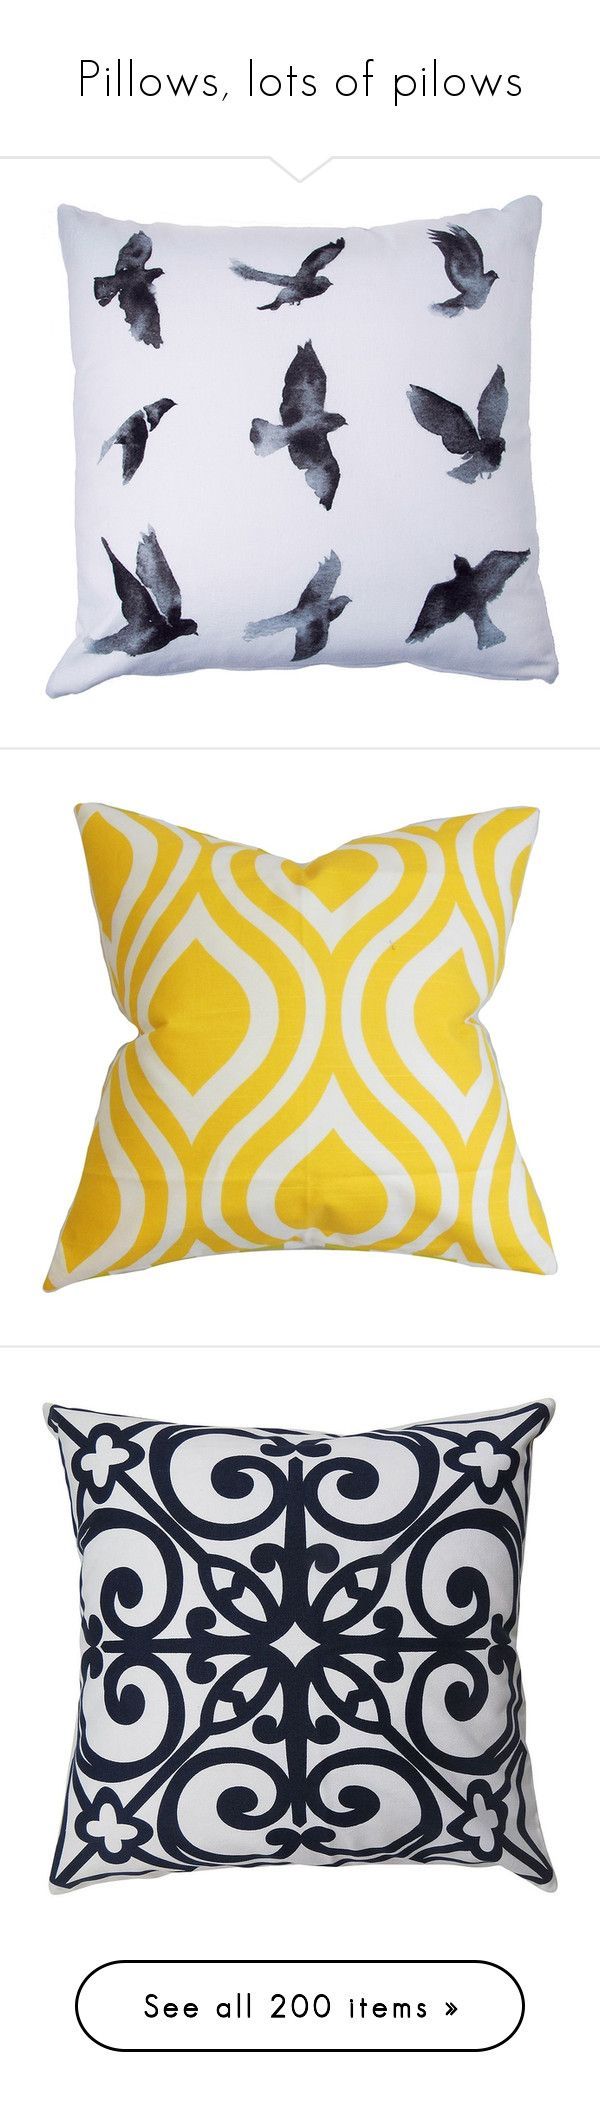 """""""Pillows, lots of pilows"""" by sassiesavy ❤ liked on Polyvore featuring home, home decor, throw pillows, graphic throw pillows, bird throw pillow, contemporary throw pillows, contemporary home decor, bird home decor, pillows and yellow"""